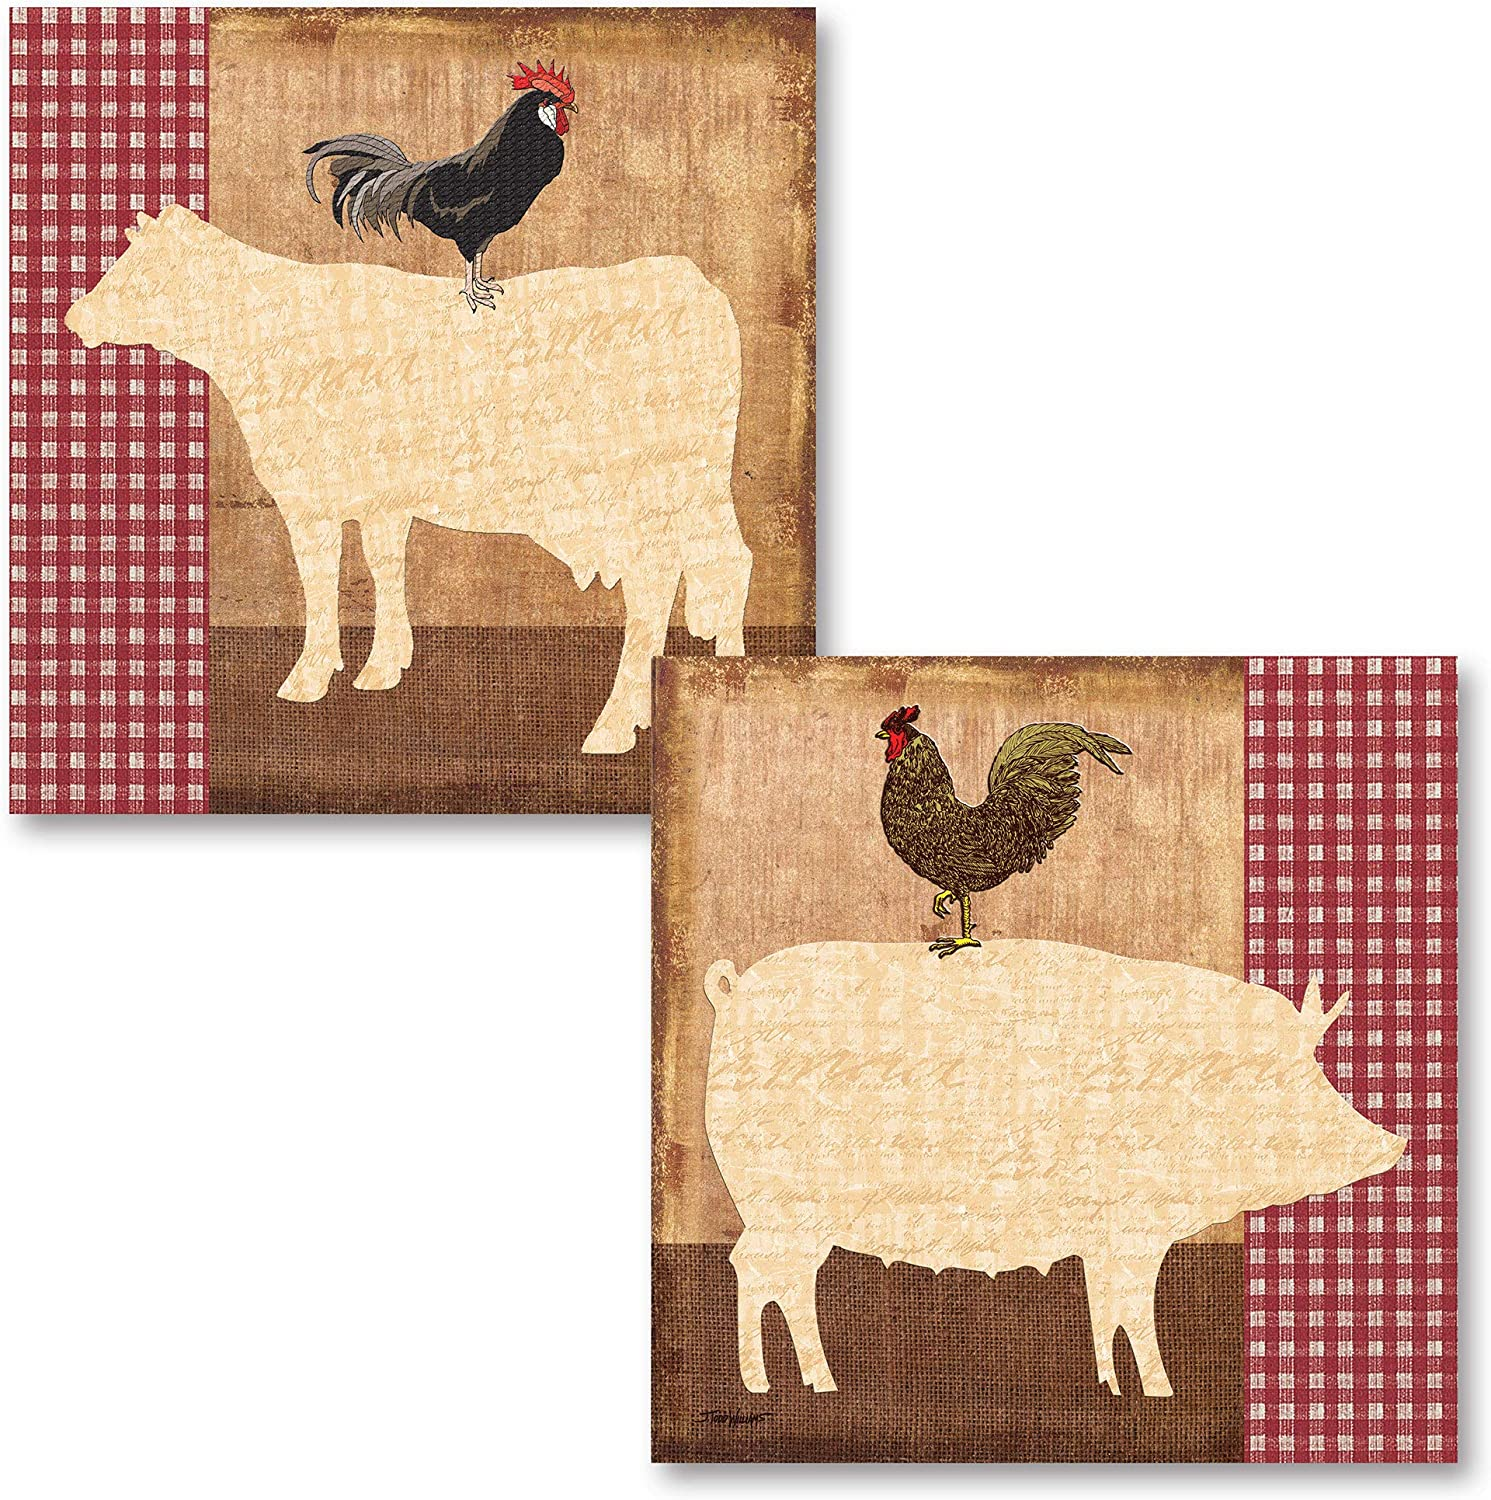 Amazon Com Fun Retro Farm Animals Pig Cow And Rooster Kitchen Decor Two 12x12 Poster Prints Posters Prints